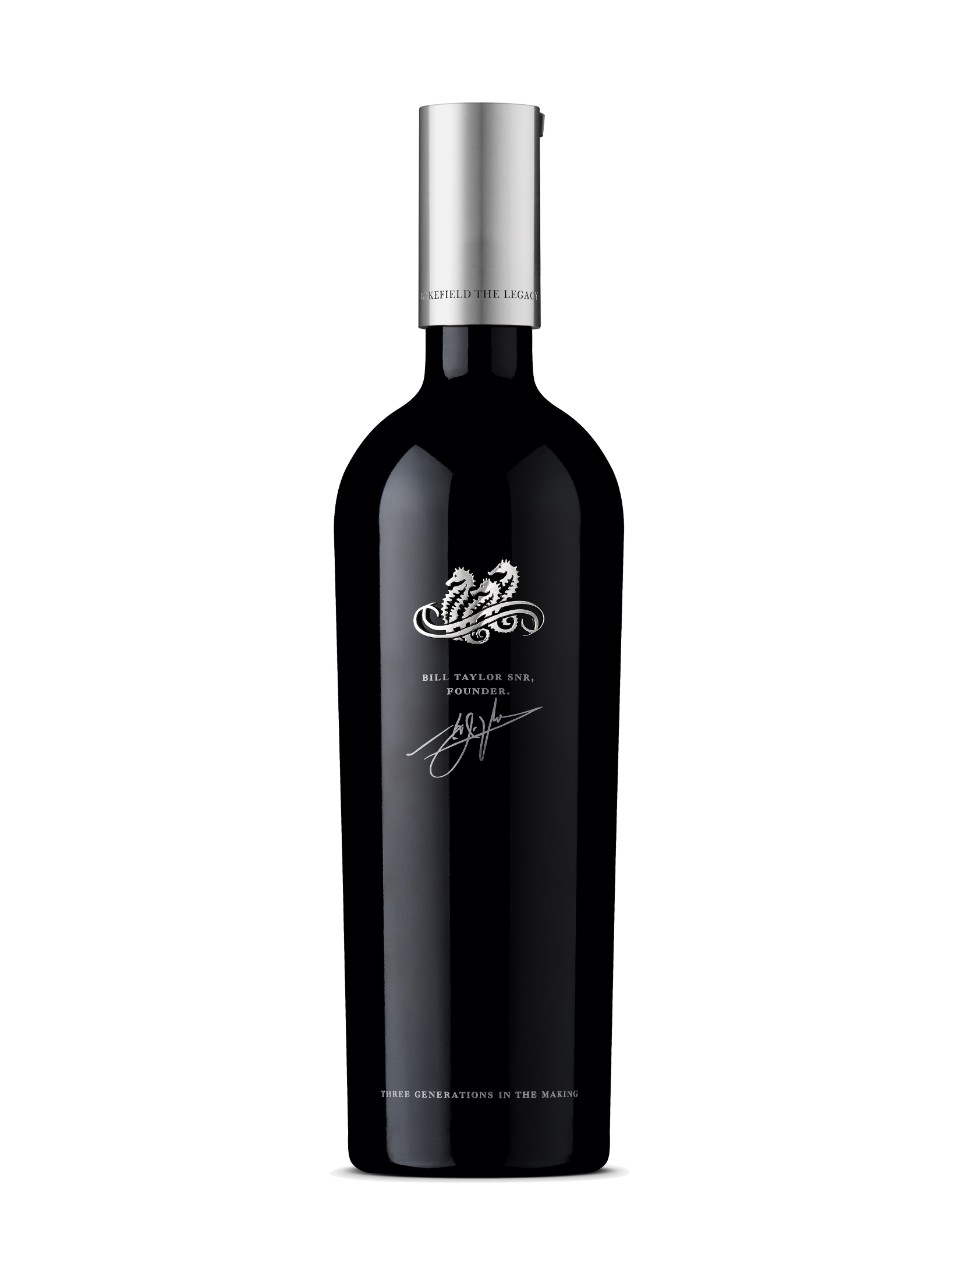 Wakefield The Legacy Cabernet Sauvignon 2014 from LCBO